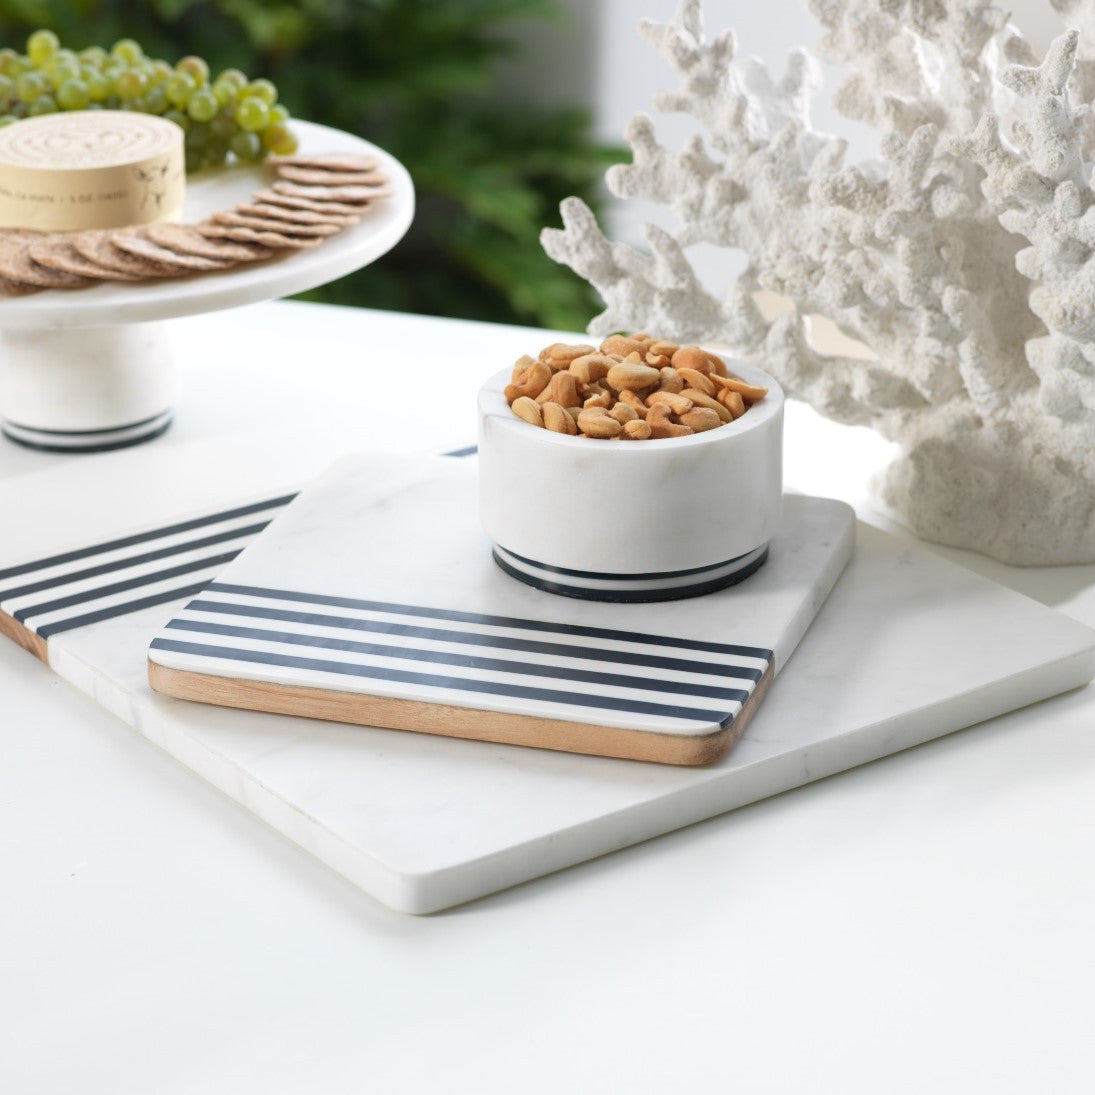 Marine Marble and Wood Cheese Board - CARLYLE AVENUE